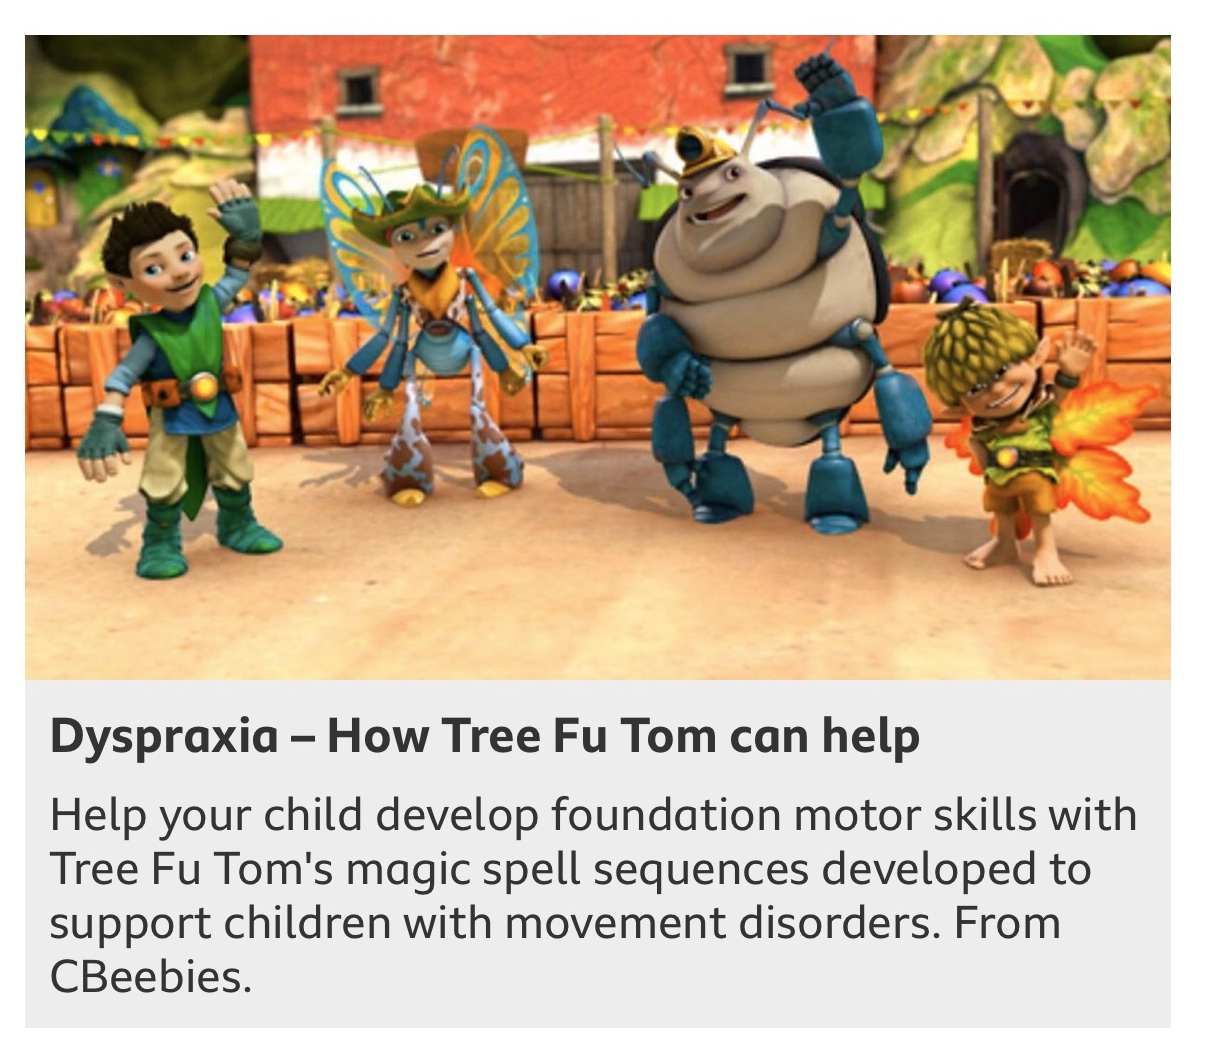 BBC TV to support Dyspraxia